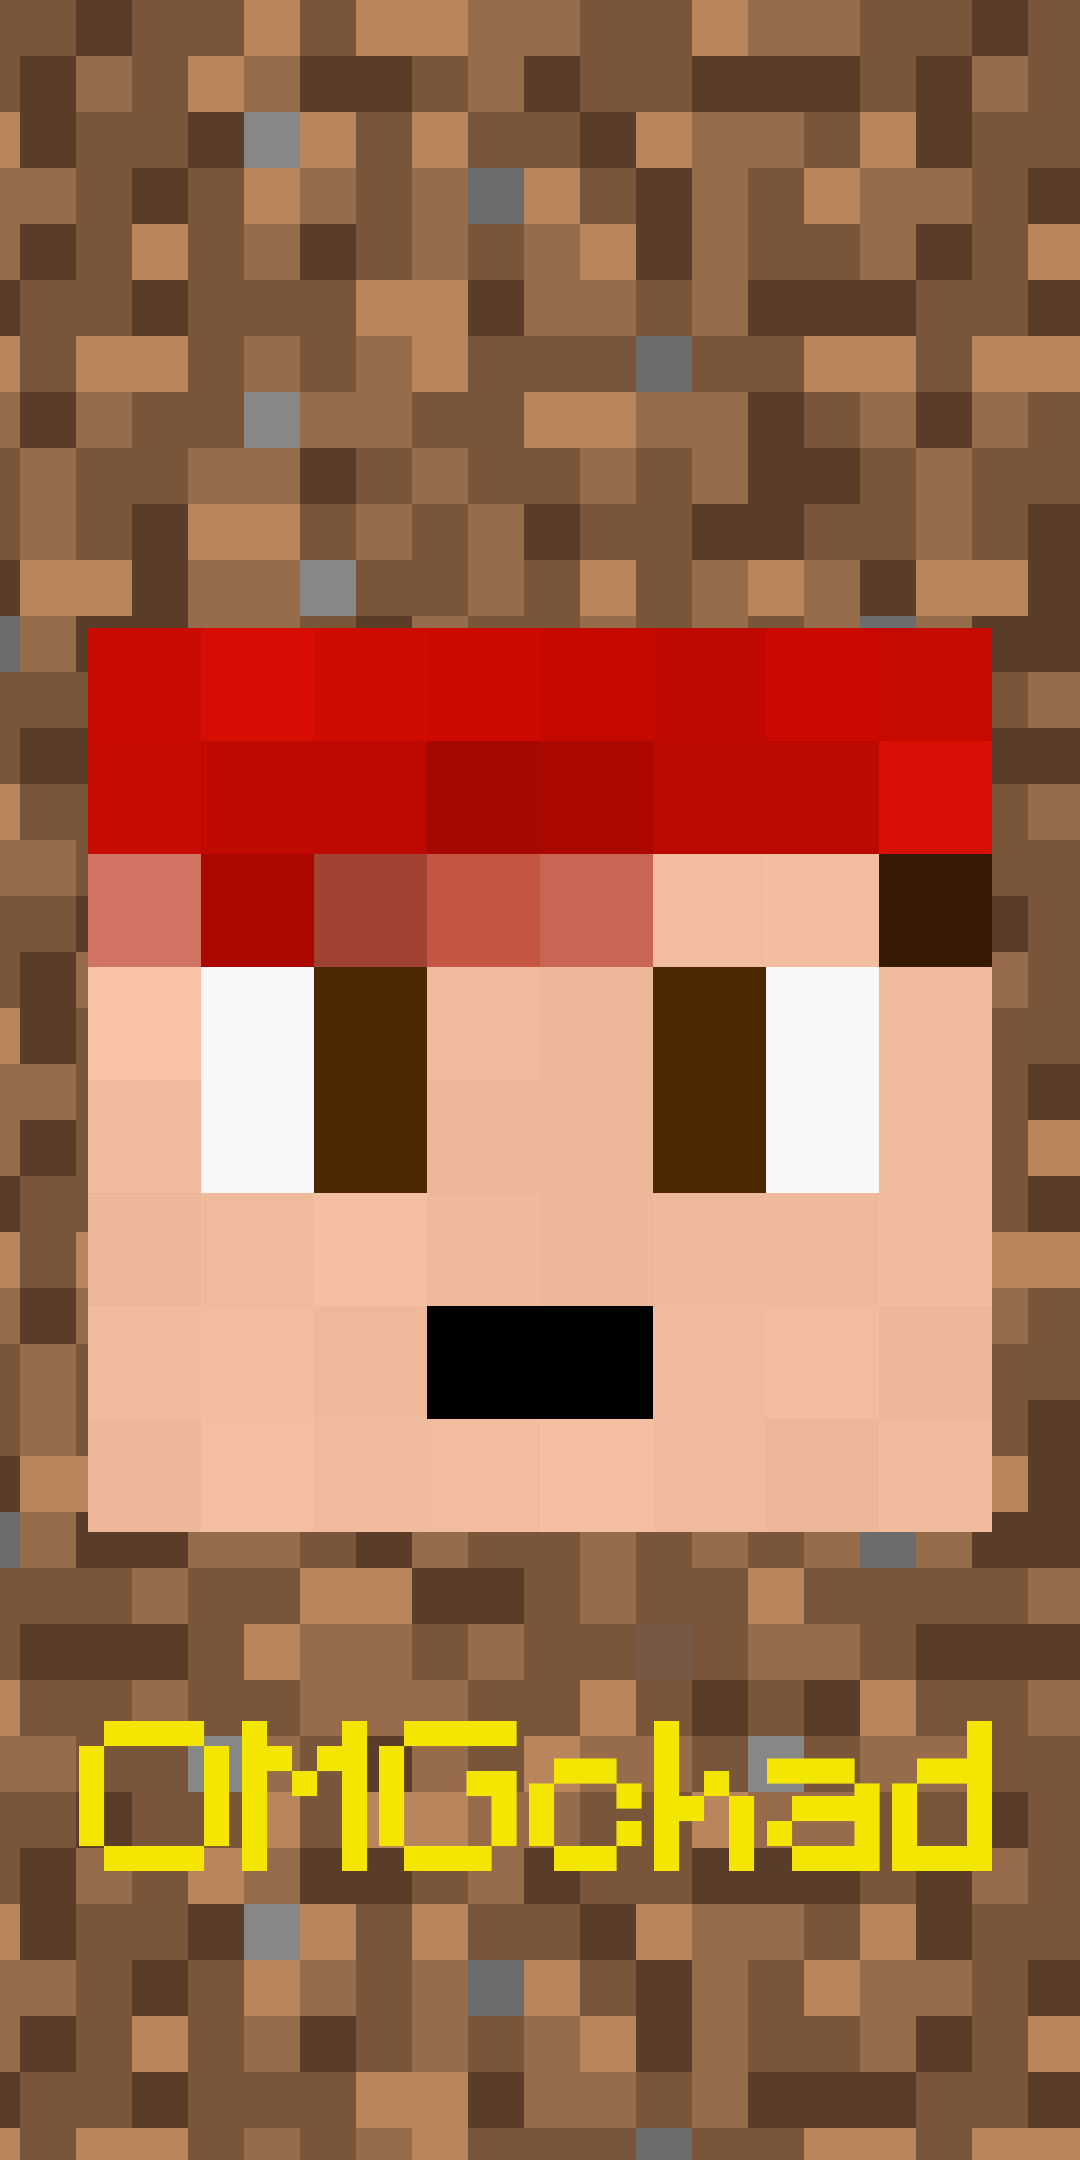 Wonderful Wallpaper Minecraft Red - 705820  You Should Have_689557.jpg